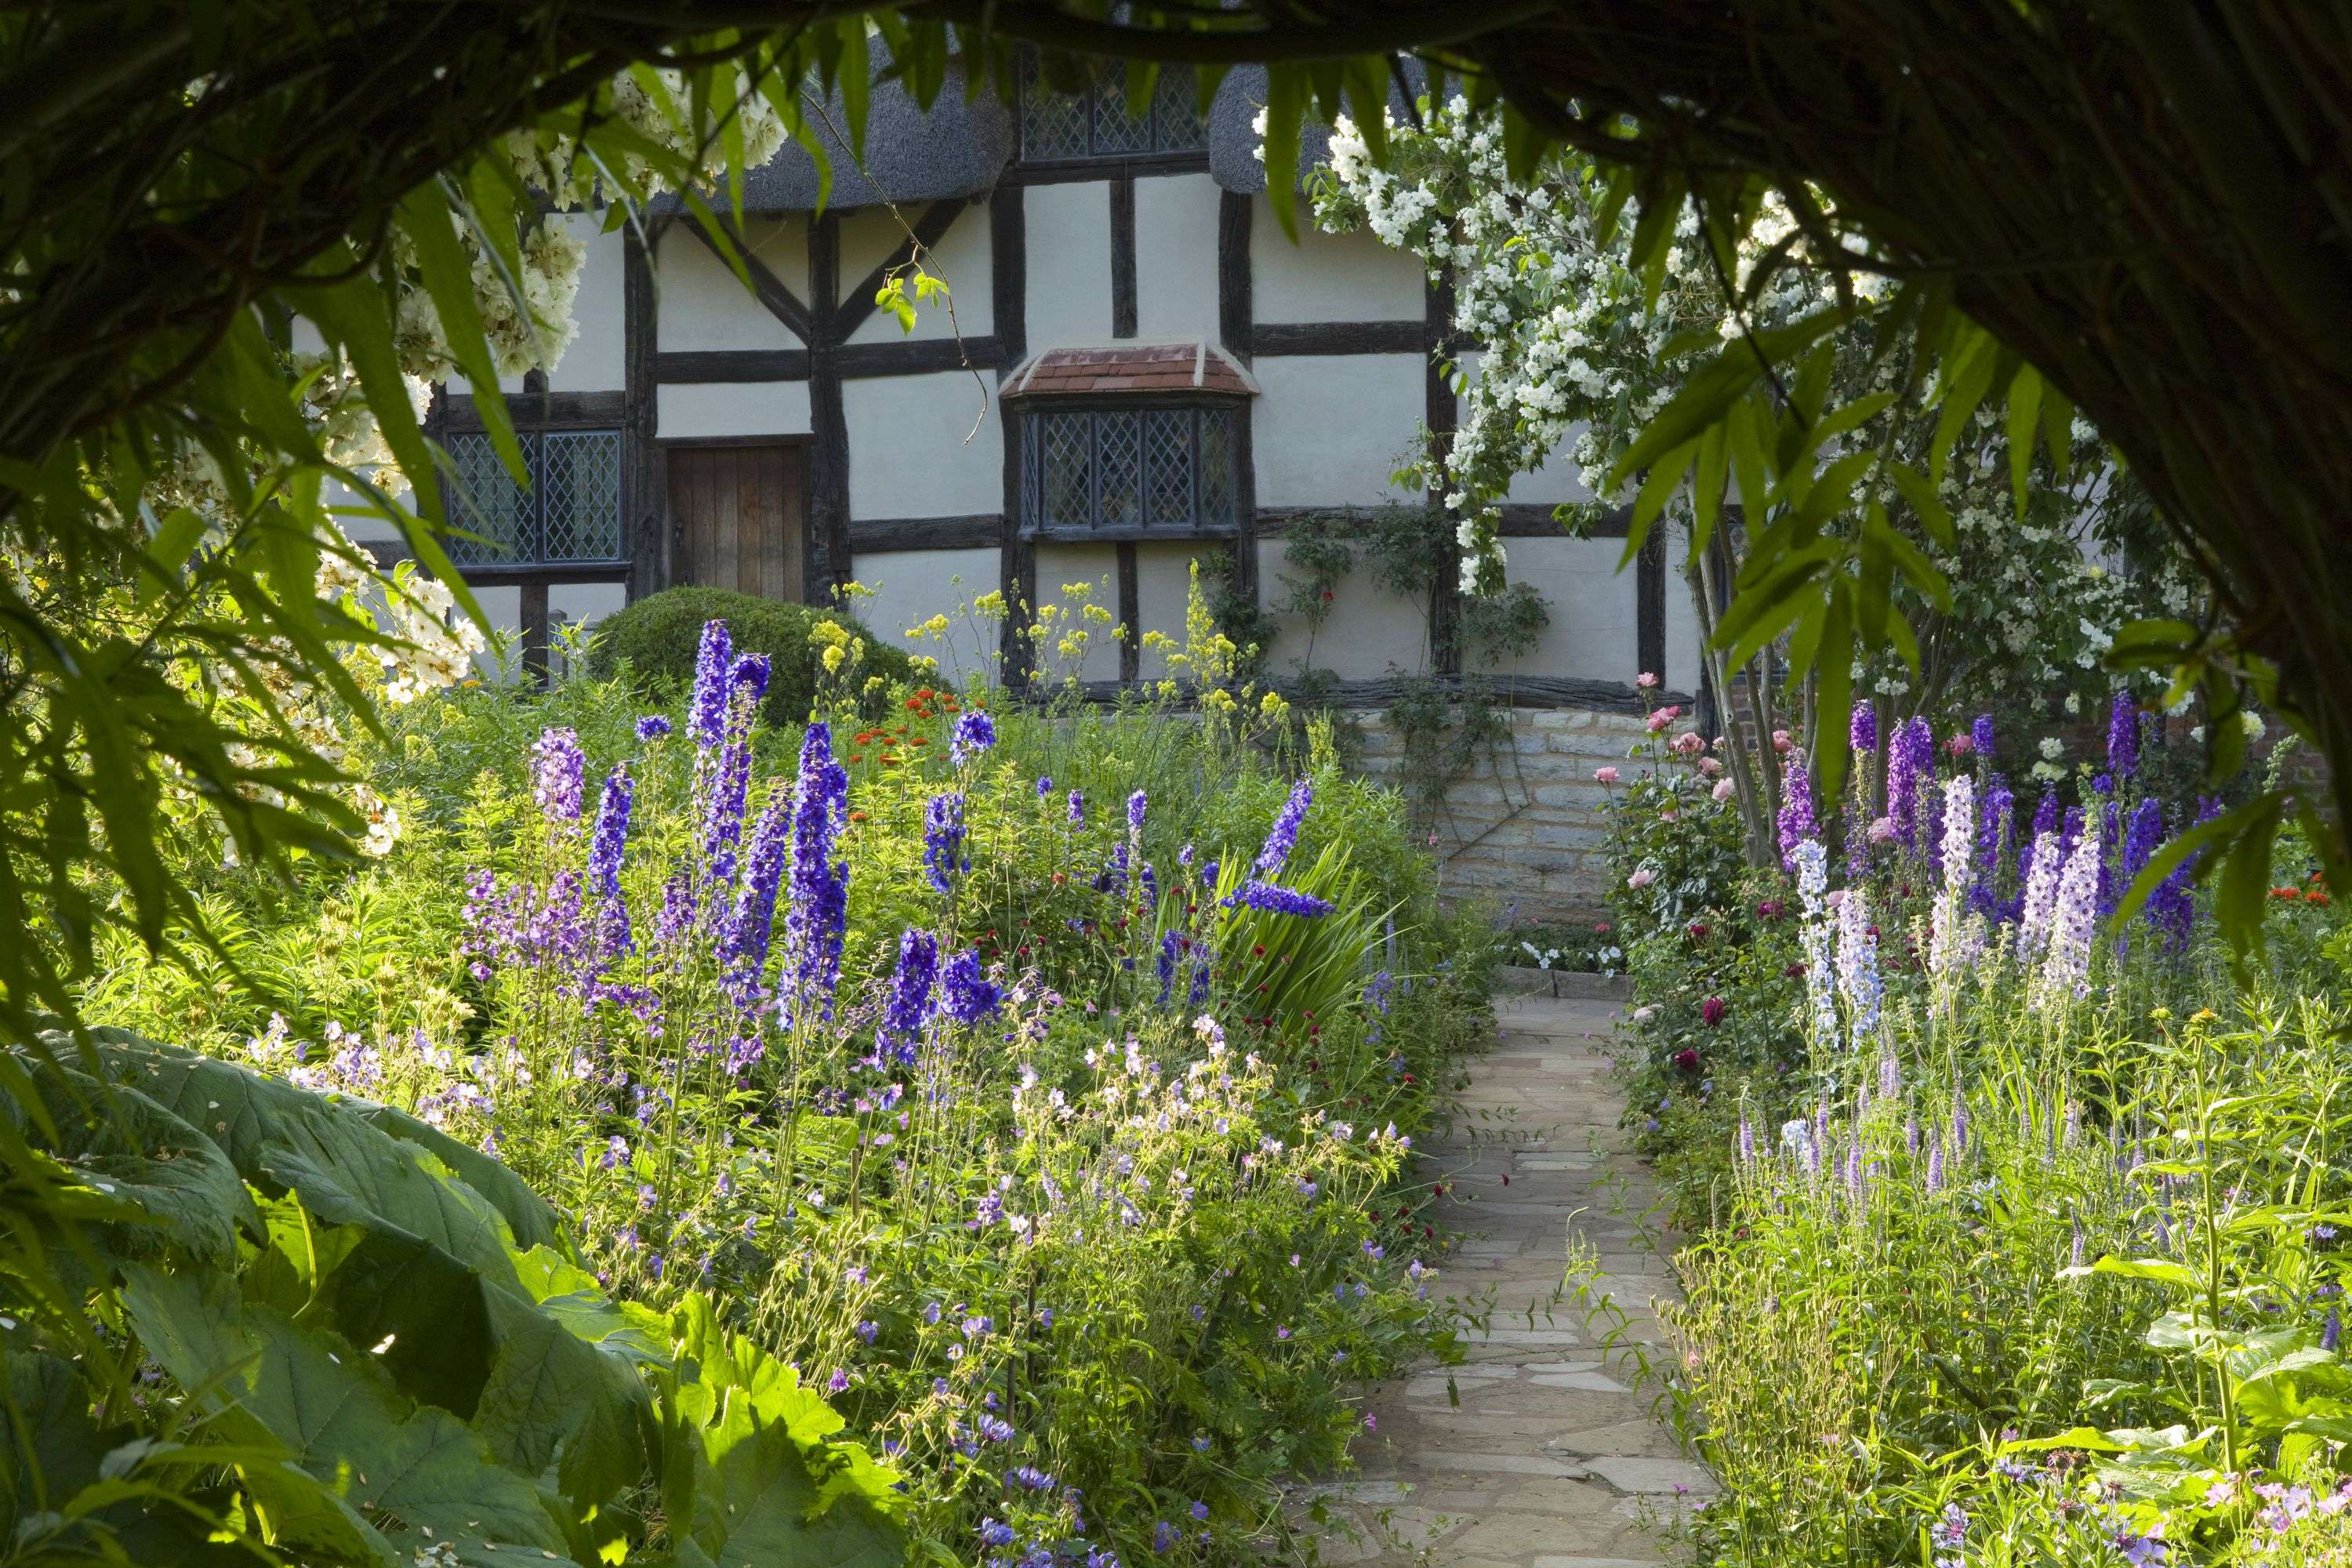 How to visit Shakespeare's Hometown from London